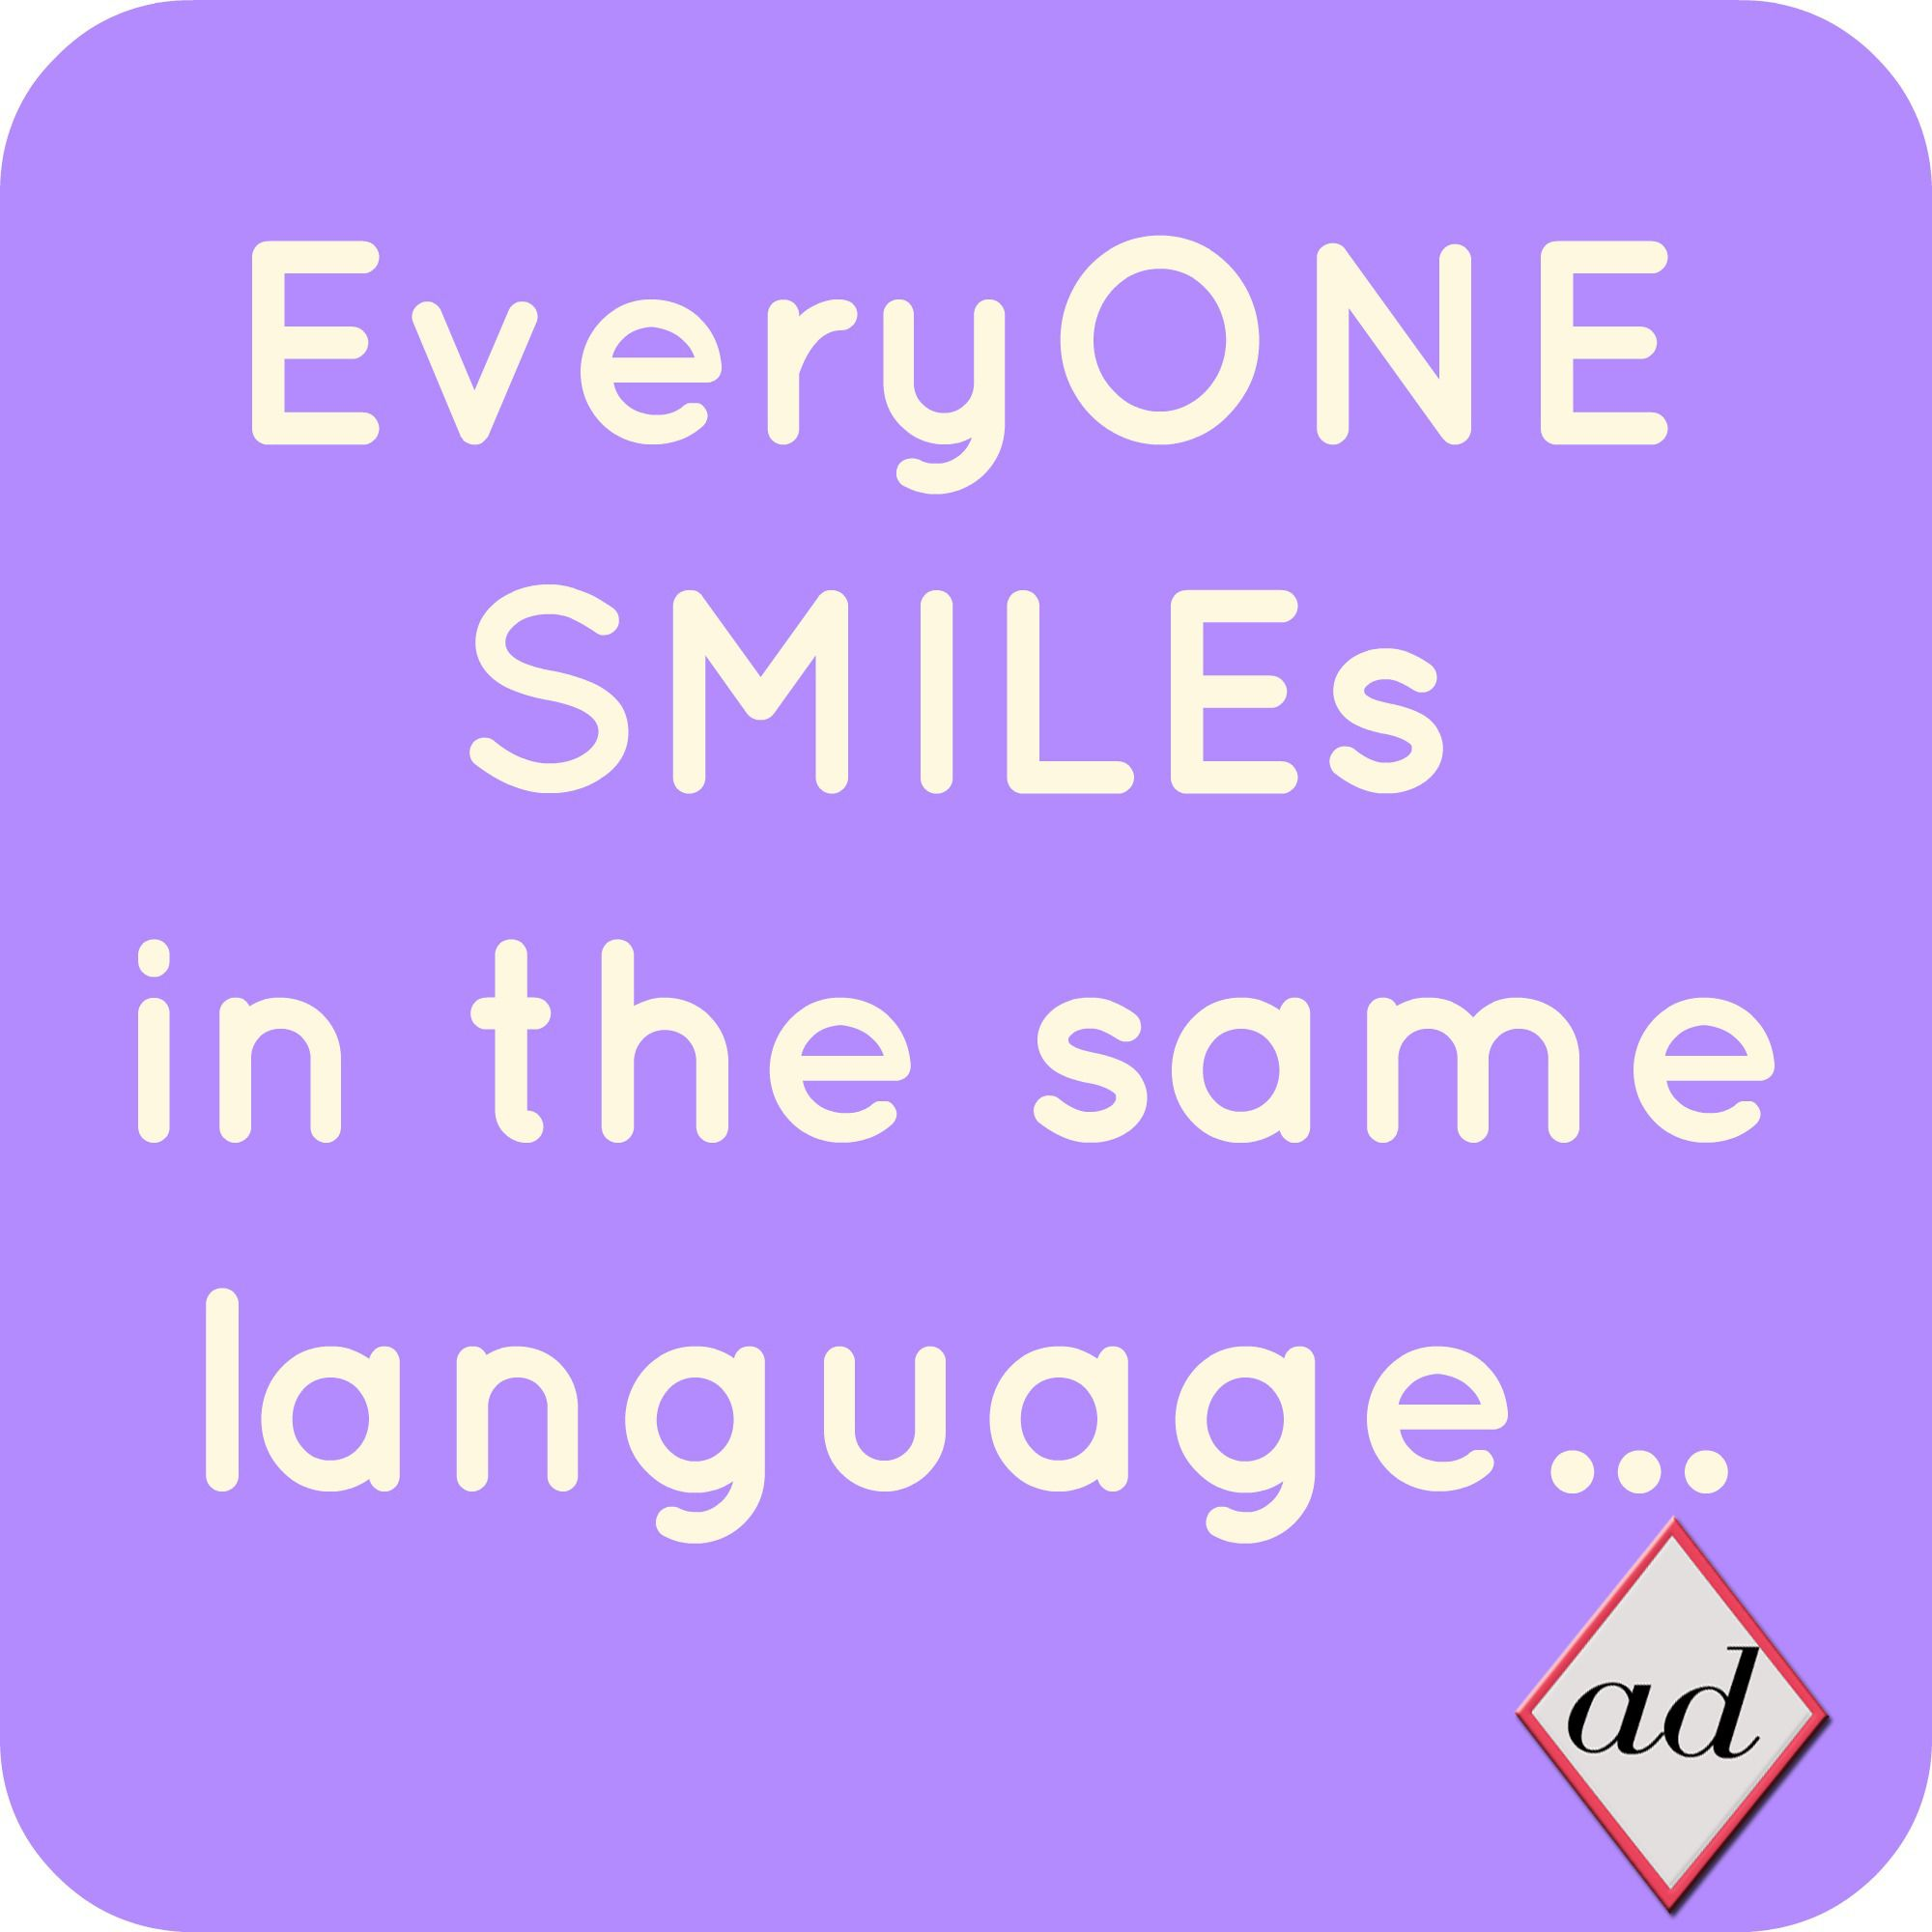 Quotes About Living Life To The Fullest Quotes About Living Life To The Fullest Smile Until Your Lights